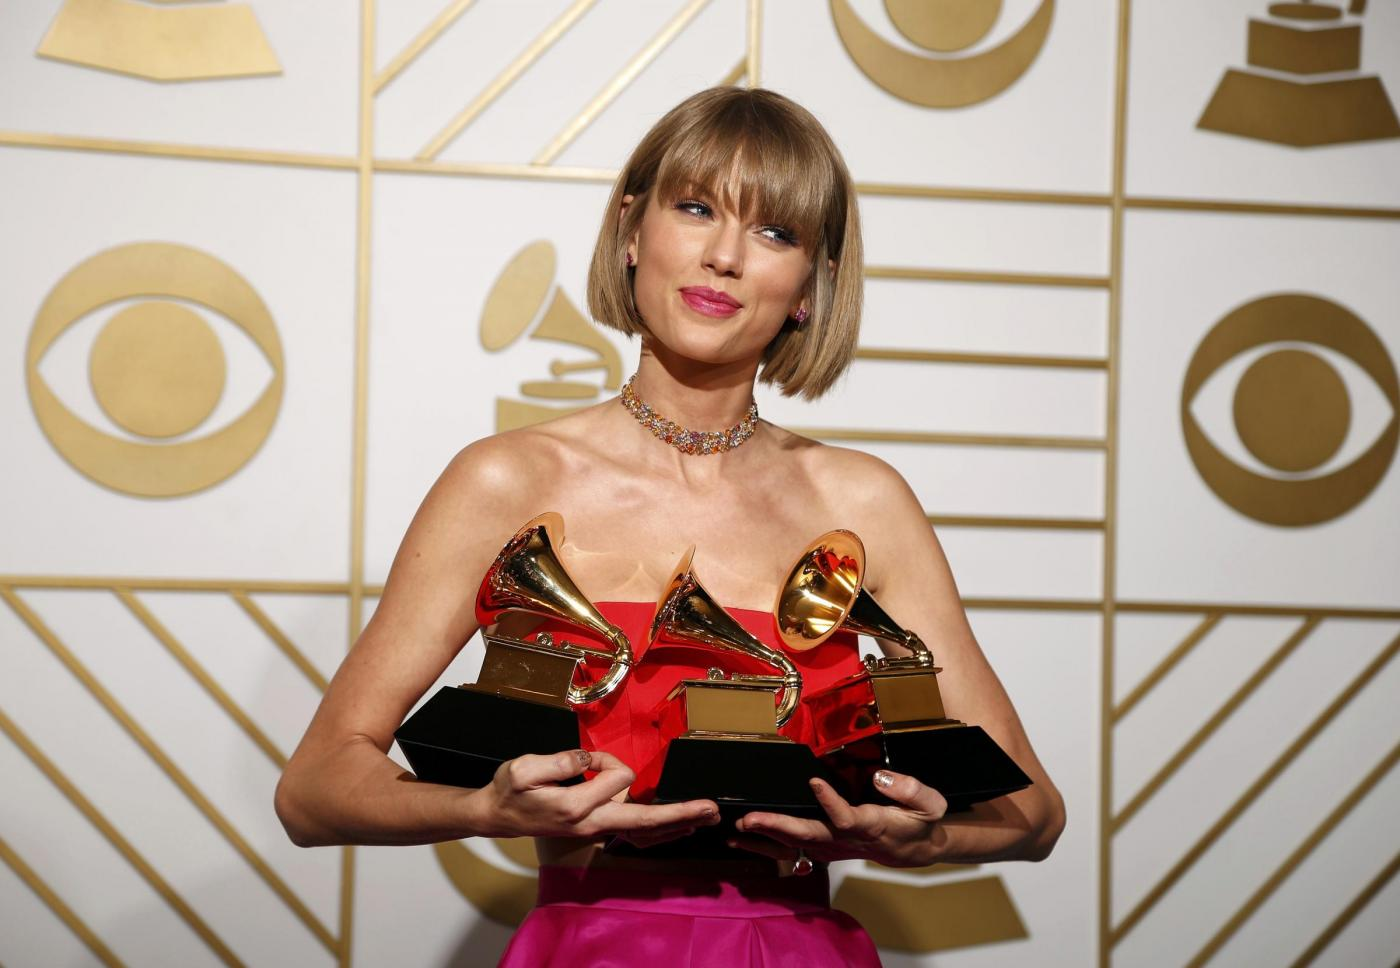 Grammy Awards 2016, i vincitori: Taylor Swift fa tris, Lady Gaga omaggia David Bowie